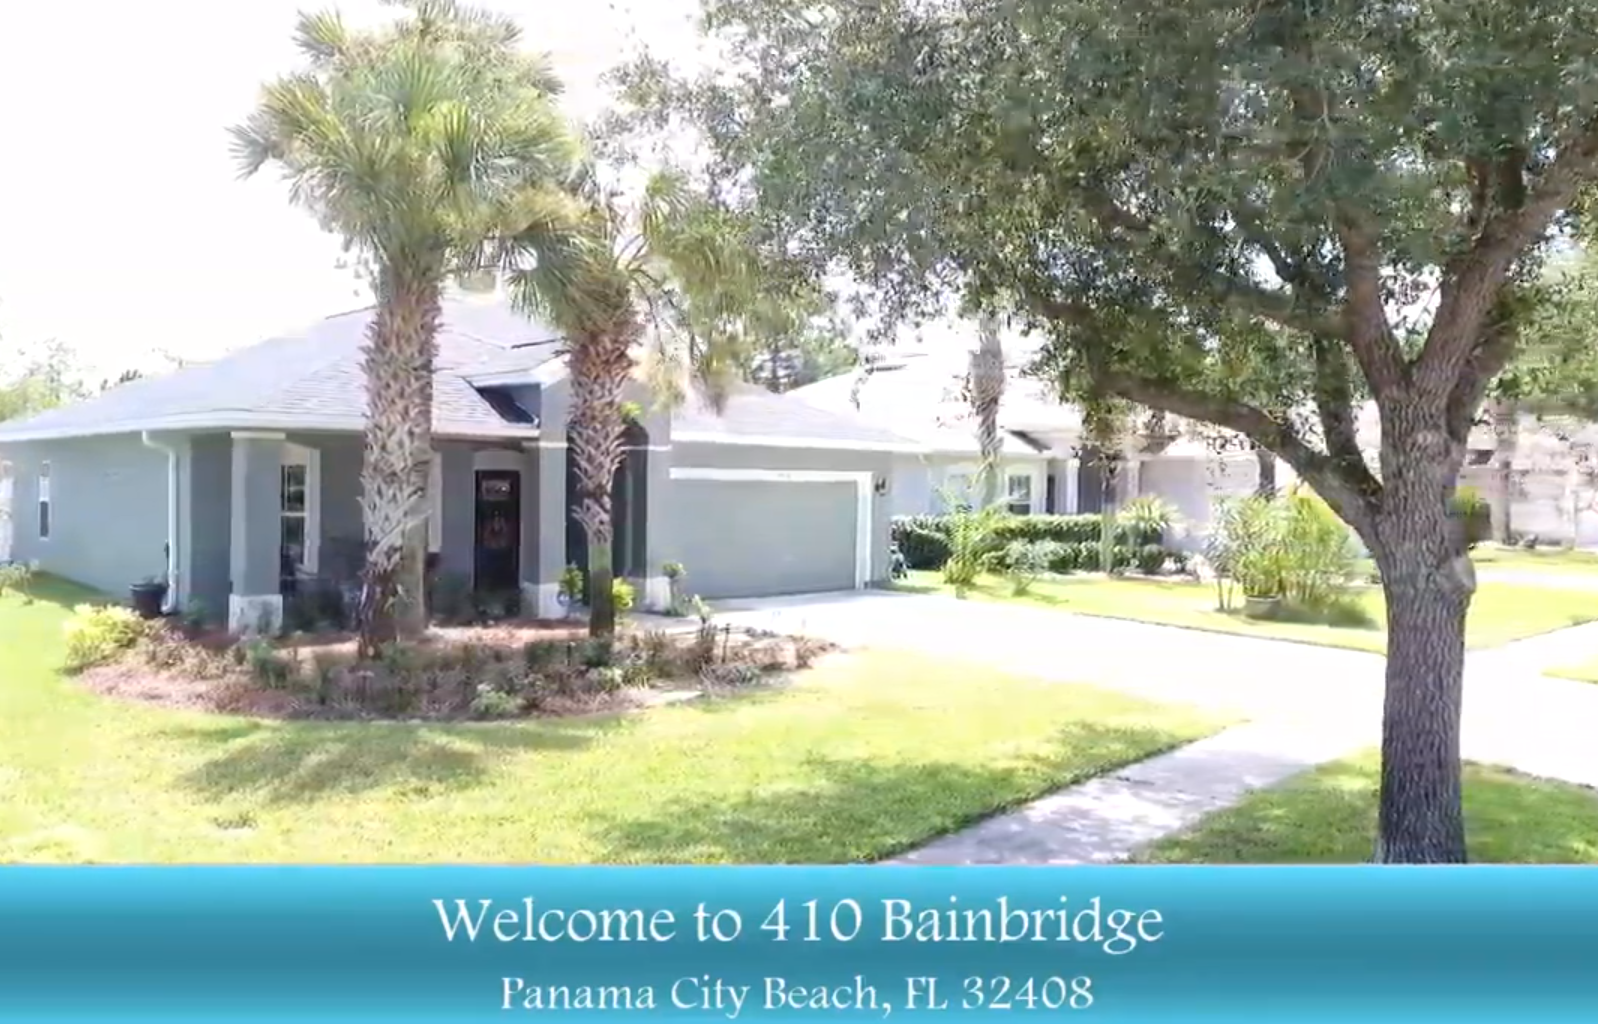 410 Bainbridge - Palmetto Trace Home for Sale in Panama City Beach